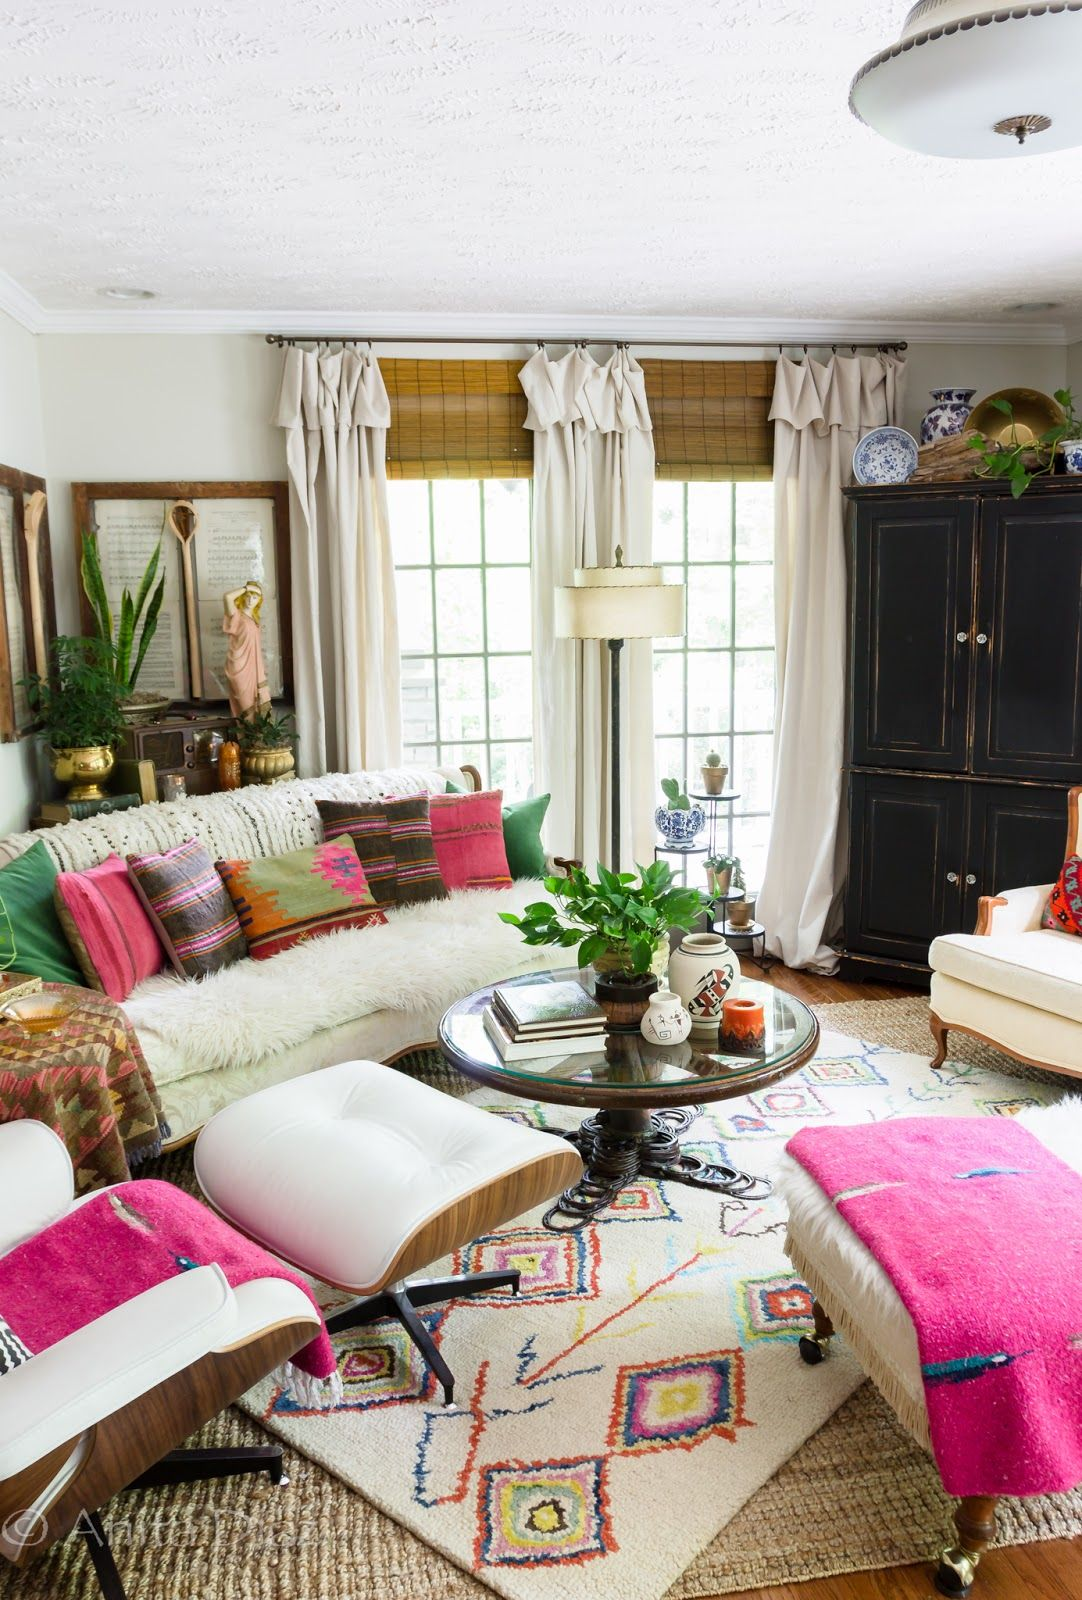 Bohemian Summer Home Tour | Eclectic modern, Bohemian and Living rooms